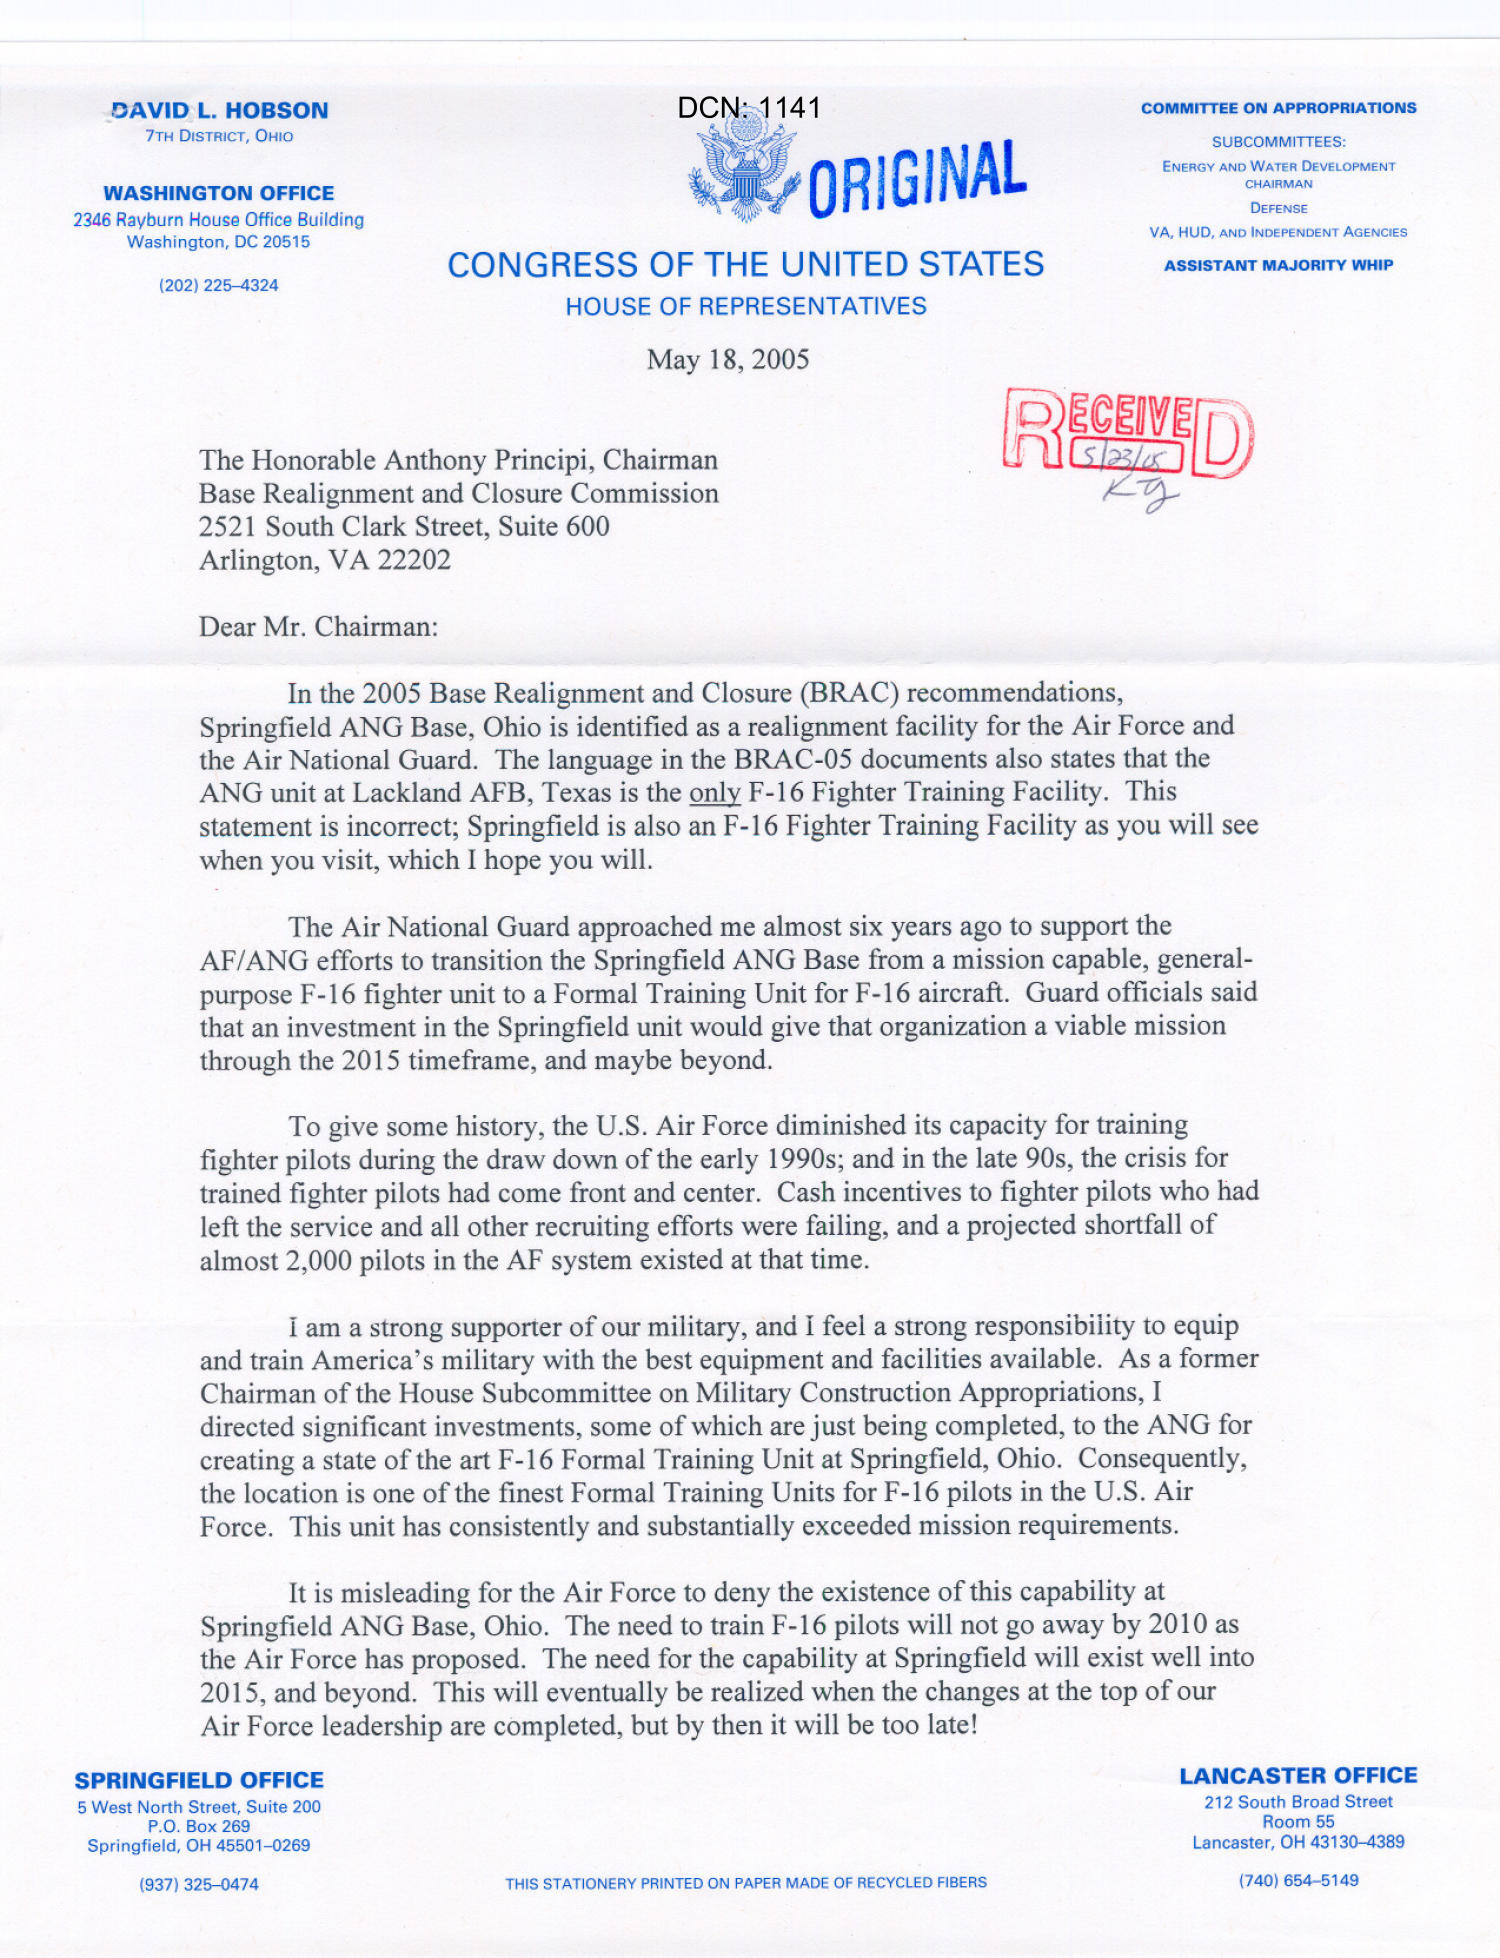 Letter from Rep. David Hobson to Chairman Principi (18May05)                                                                                                      [Sequence #]: 1 of 2